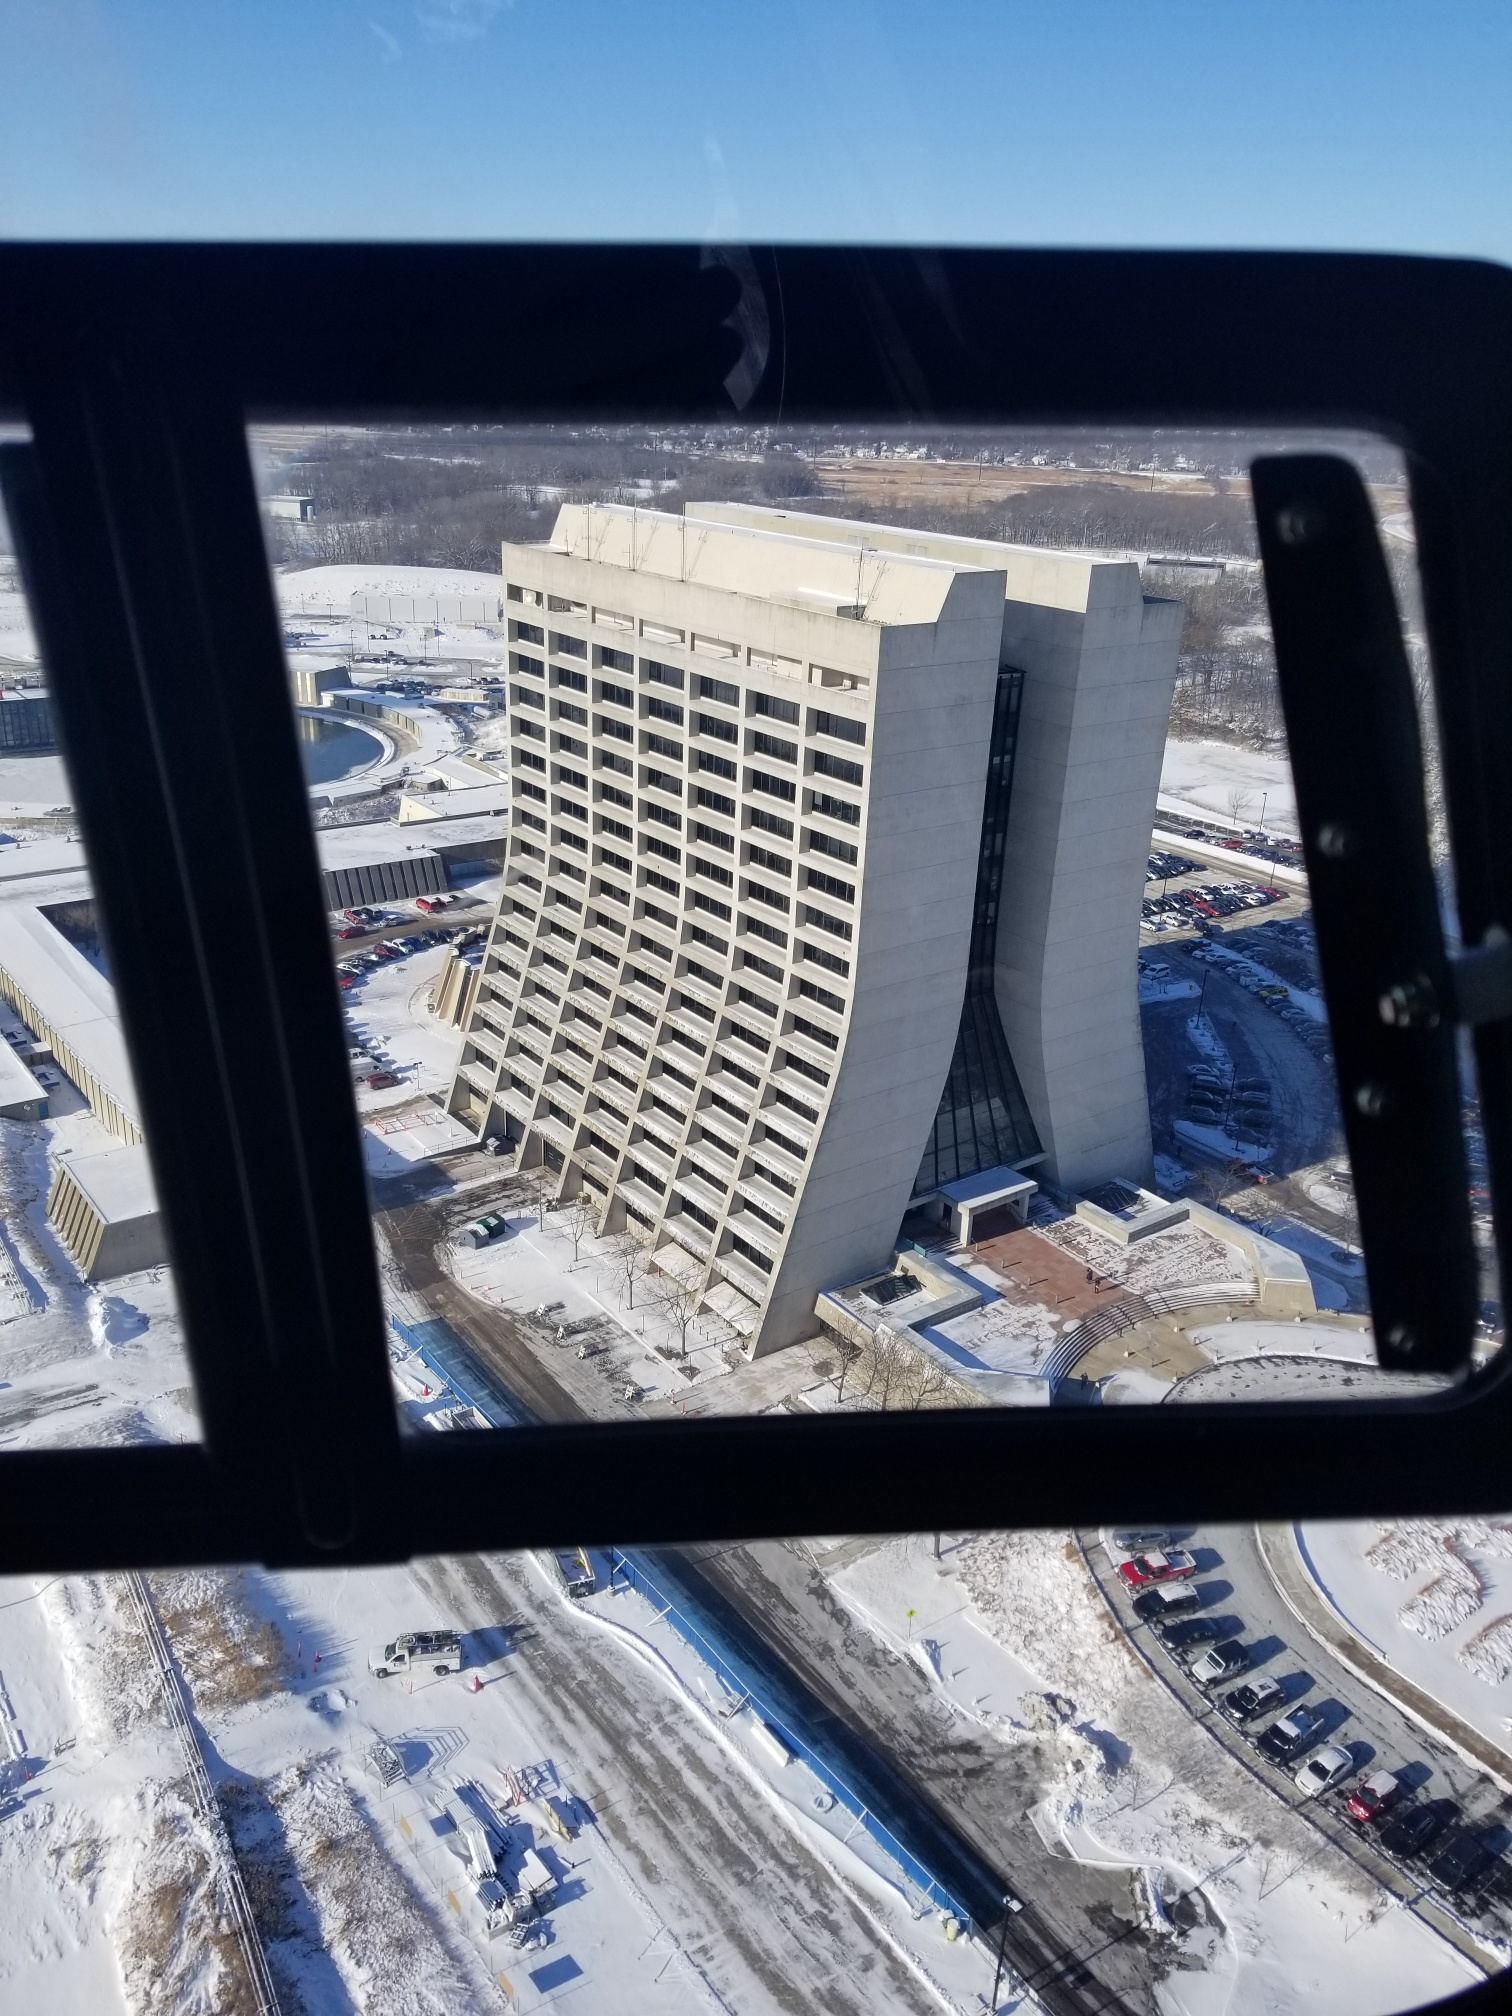 On Friday, Feb. 14, Jon Ylinen and Walter Levernier conduct the annual deer count from a helicopter flying over the Fermilab grounds. The photographer captured this view of Wilson Hall from the air. building, Wilson Hall, winter, snow, aerial Photo: Jon Ylinen